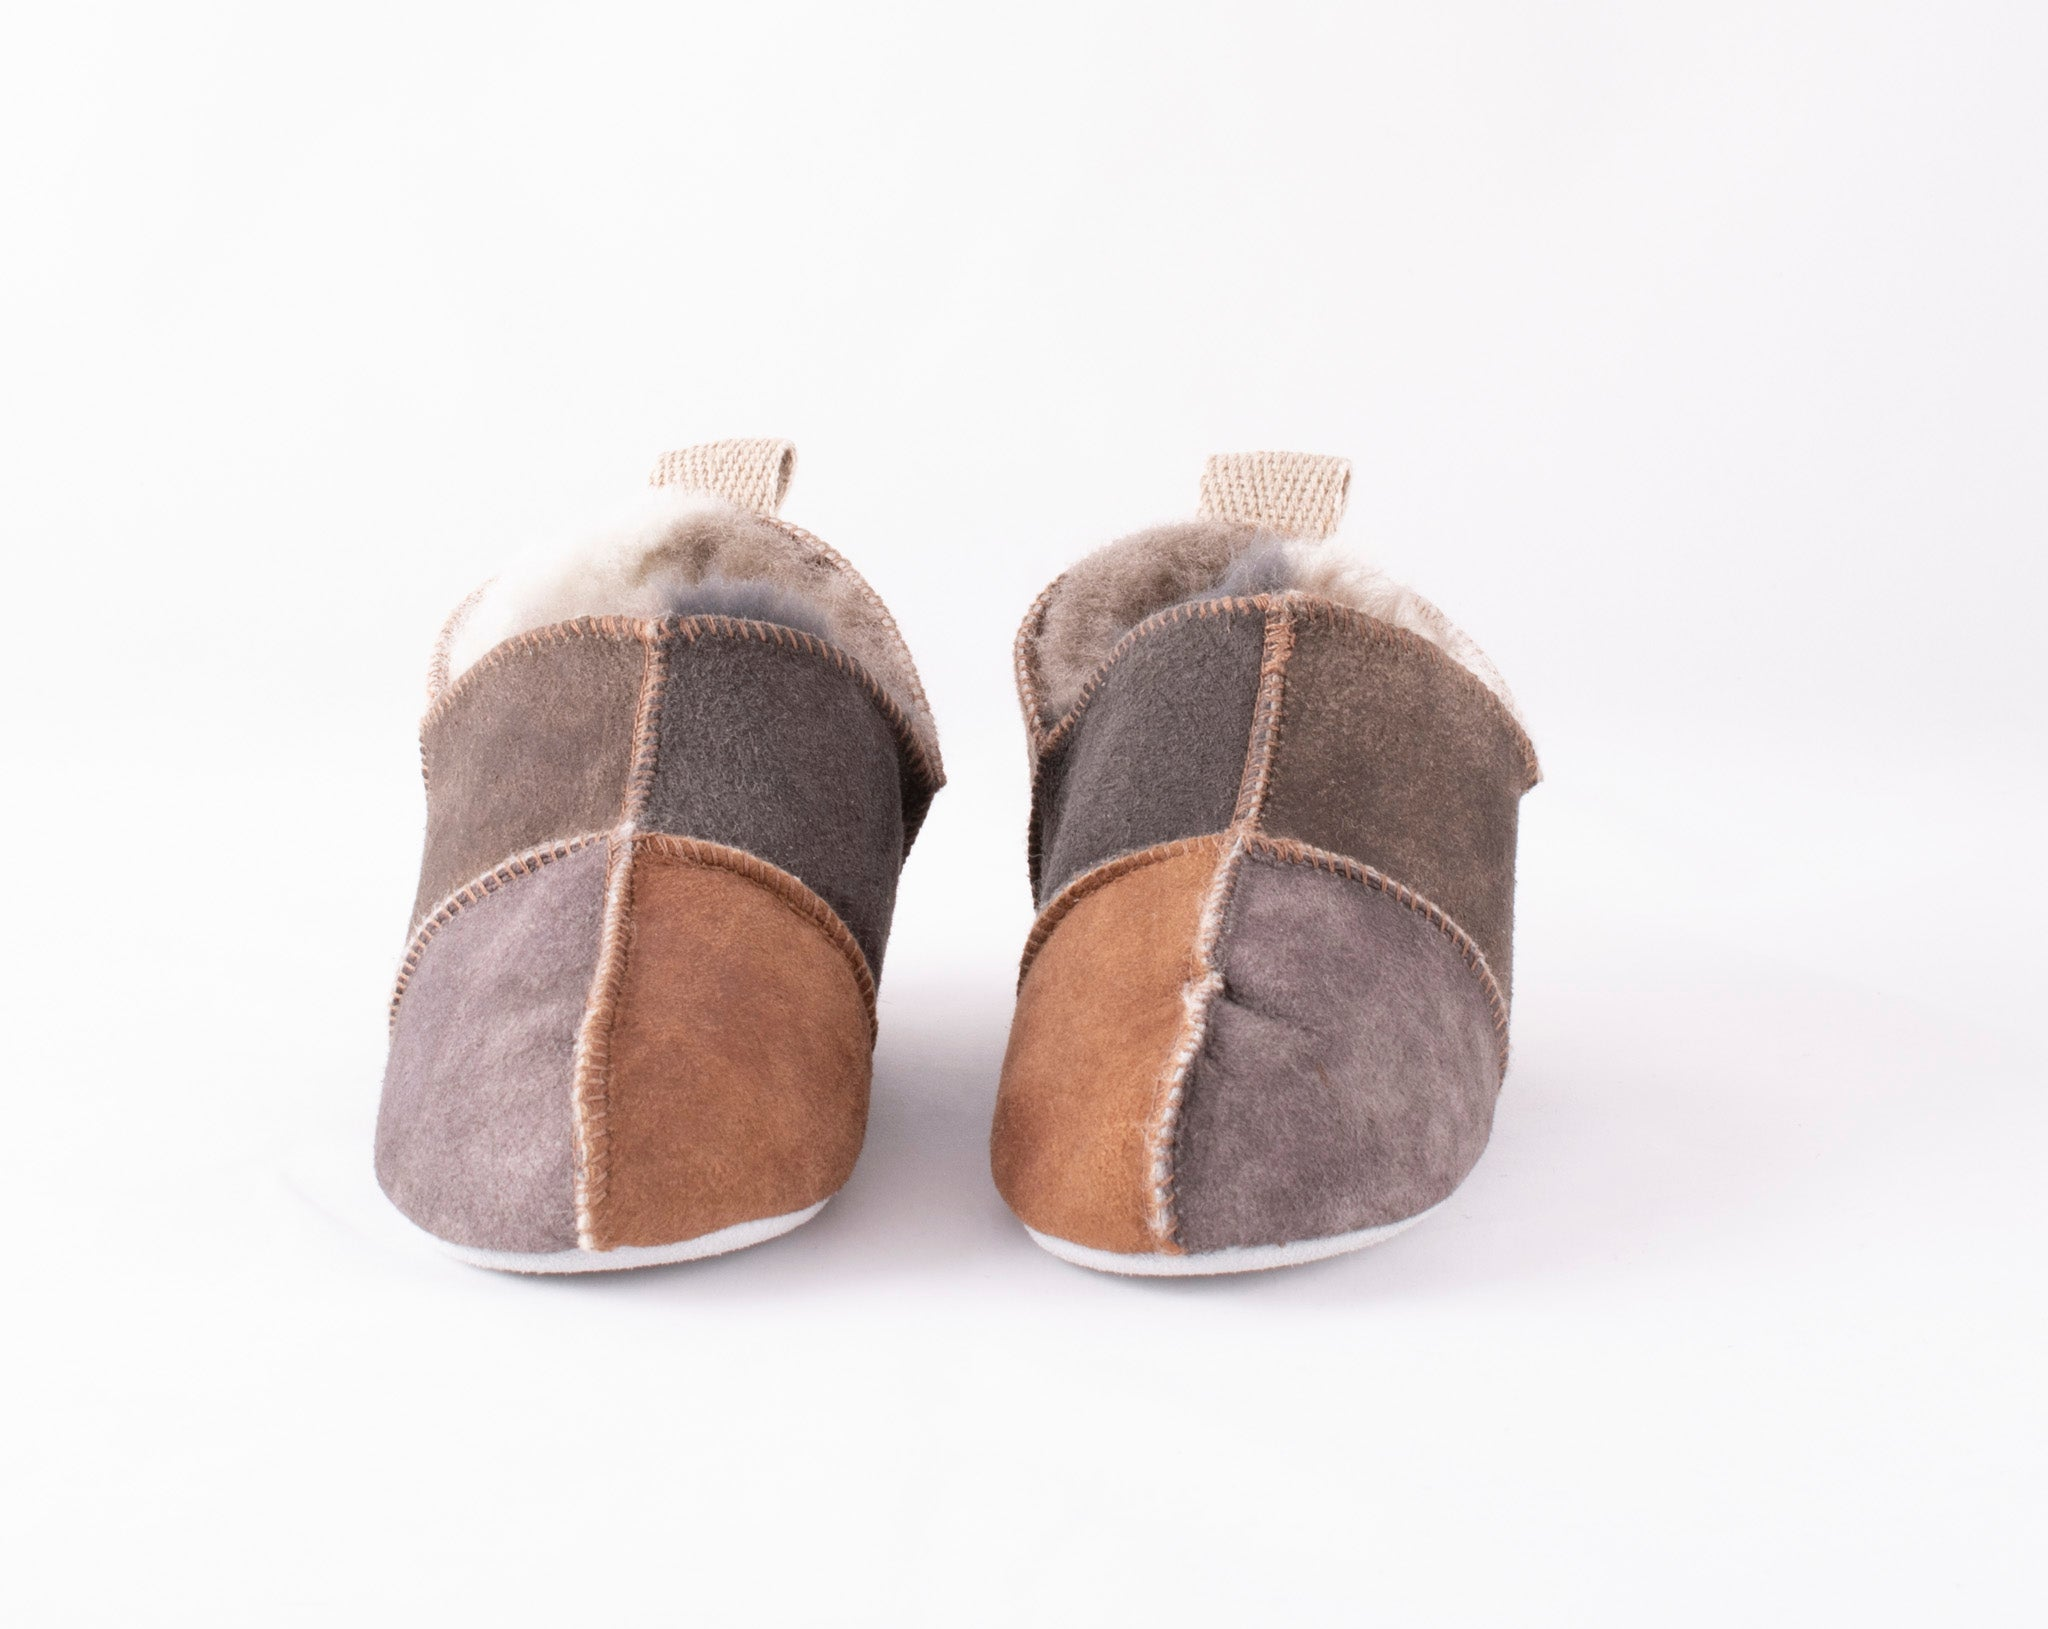 Shepherd of Sweden Nora Women's slippers crafted from sheepskin